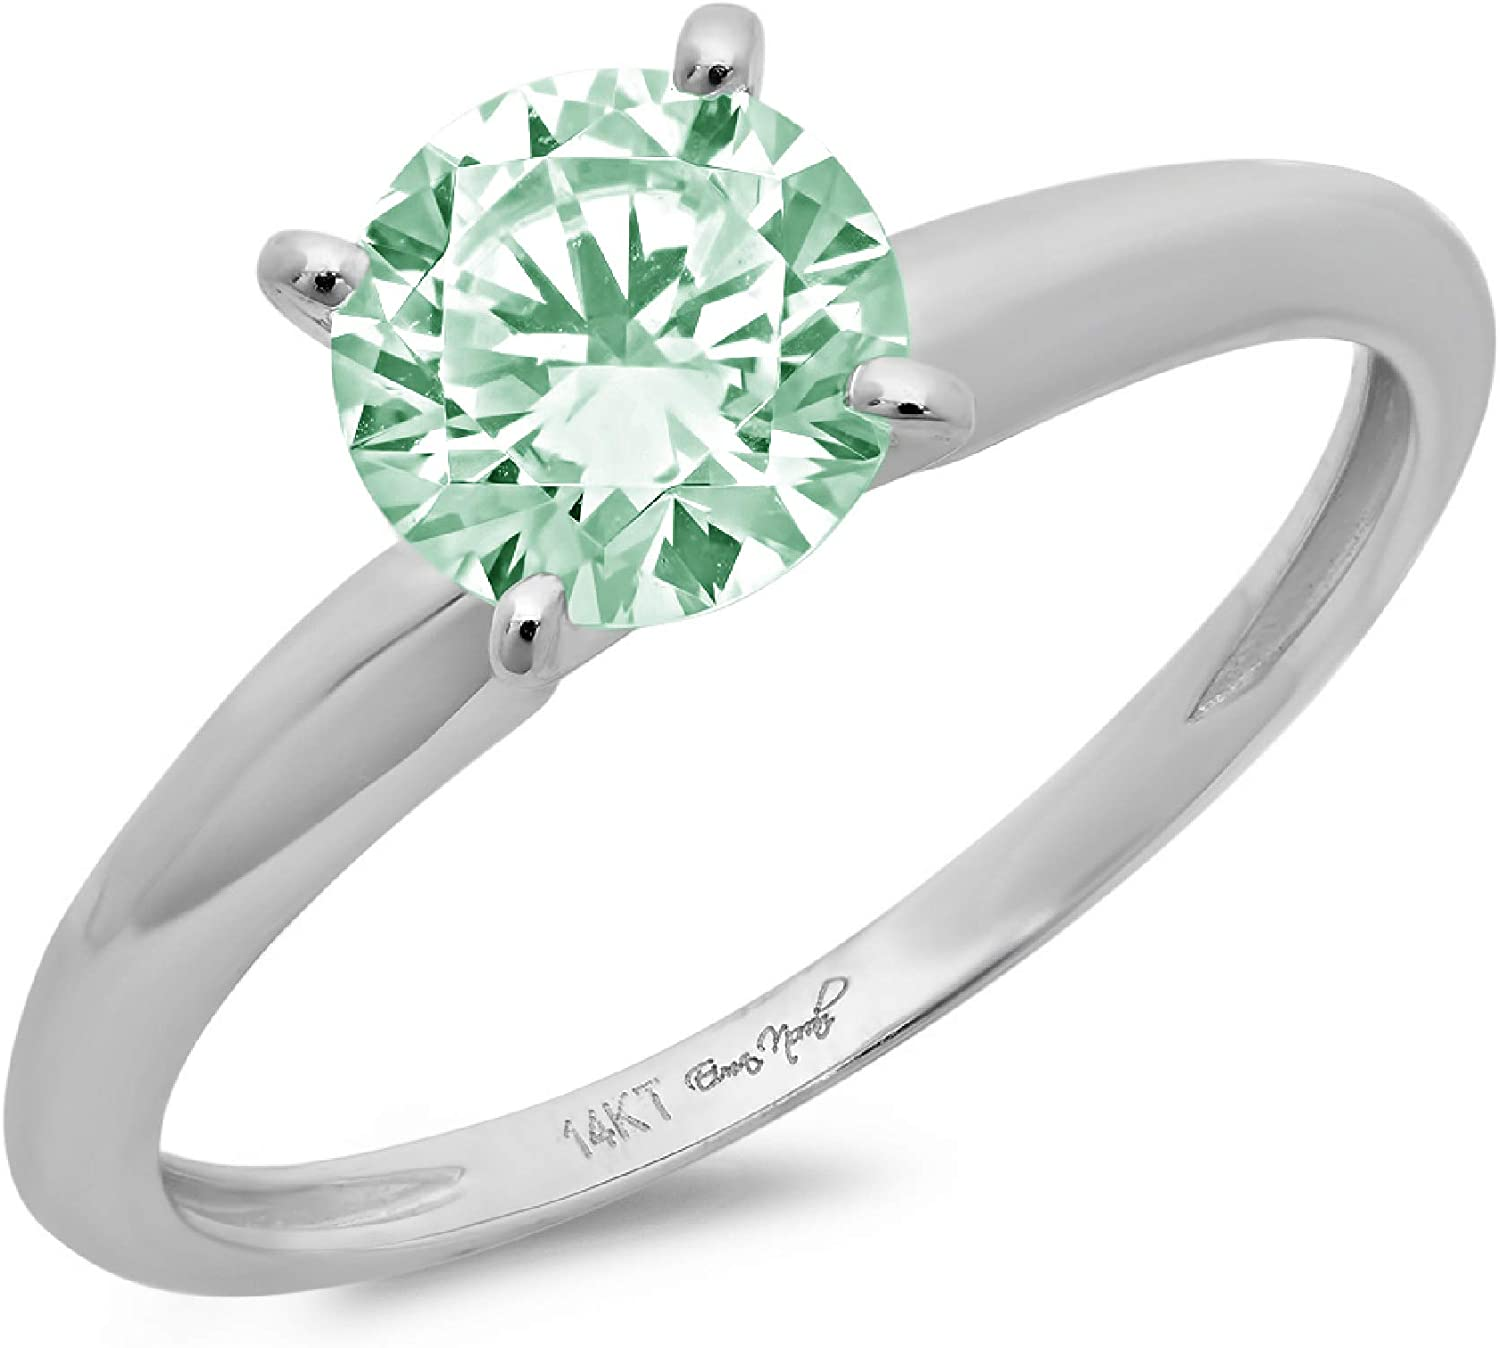 3.0 ct Brilliant Round Cut Solitaire Davidsonite Mint Green Simulated Diamond CZ Ideal VVS1 D 4-Prong Engagement Wedding Bridal Promise Anniversary Ring in Solid Real 14k White Gold for Women